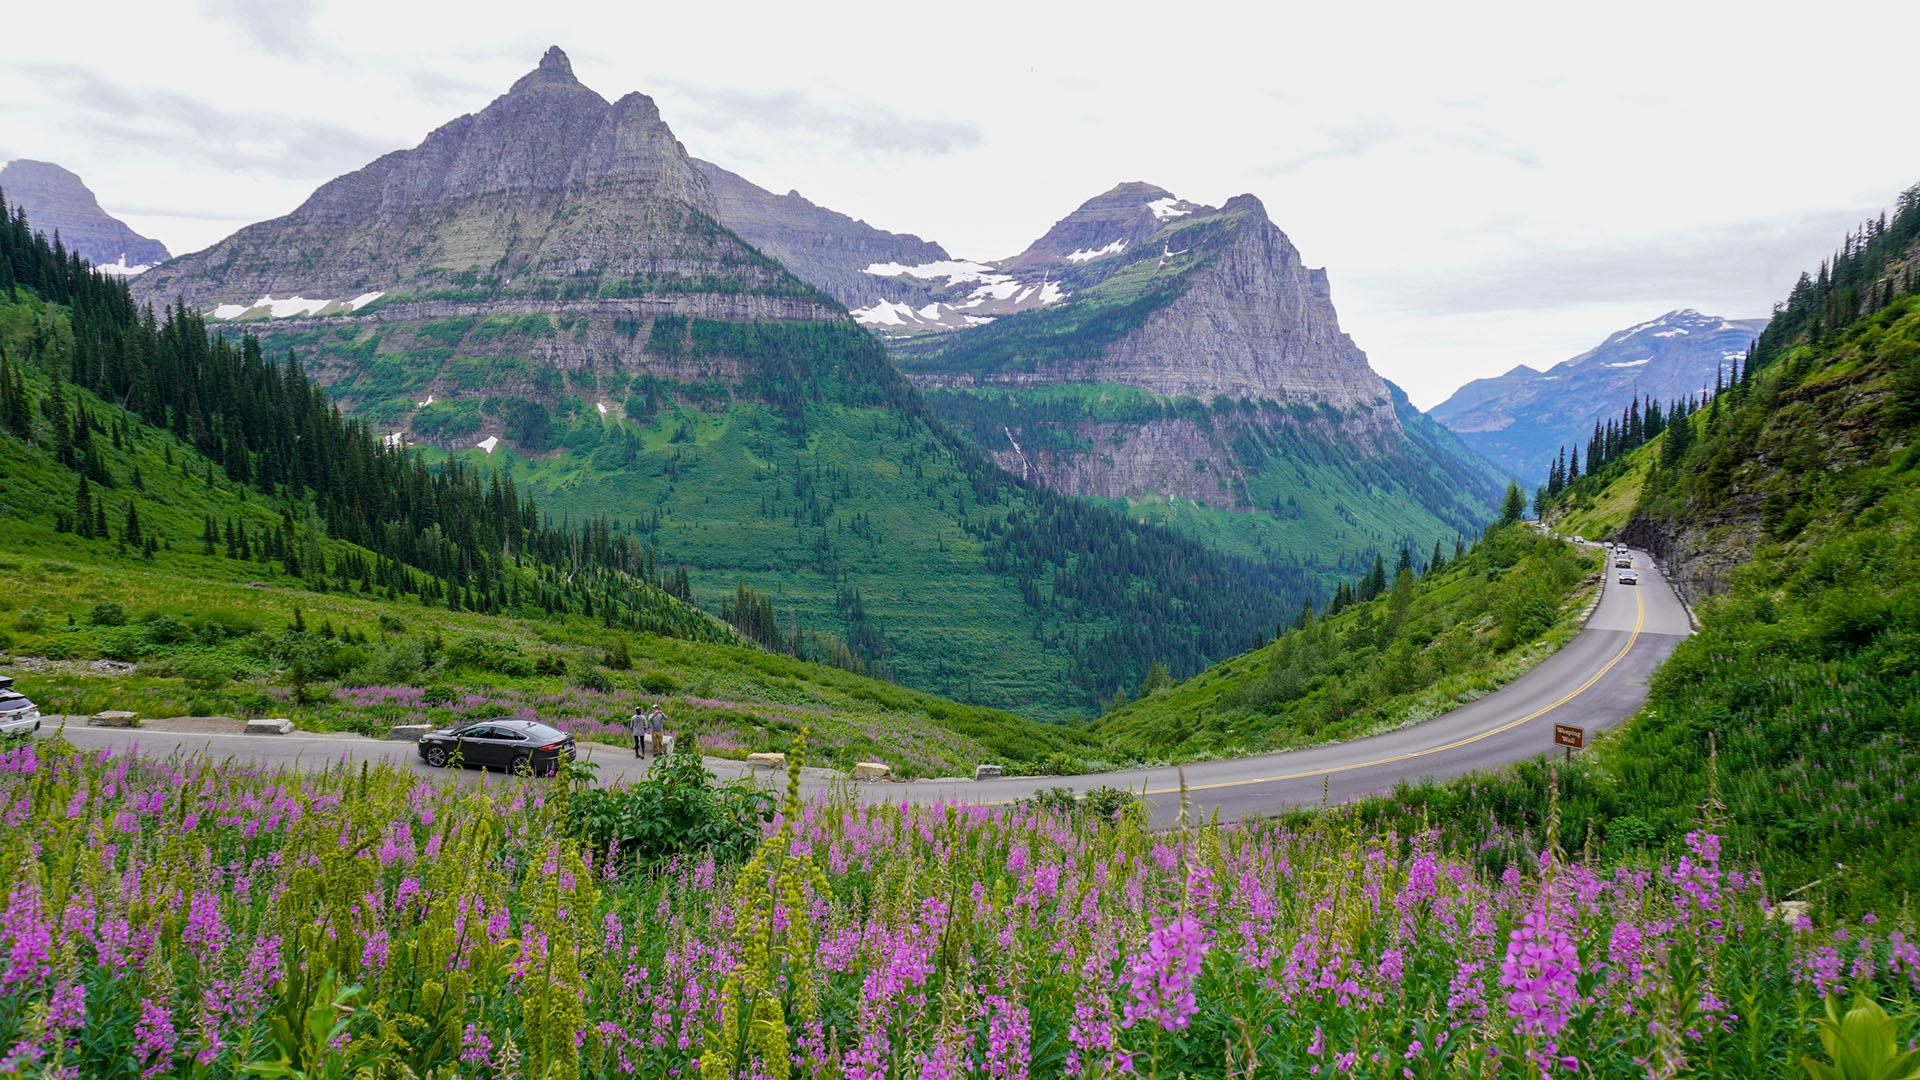 A view of Going-to-the-Sun Road near the Weeping Wall